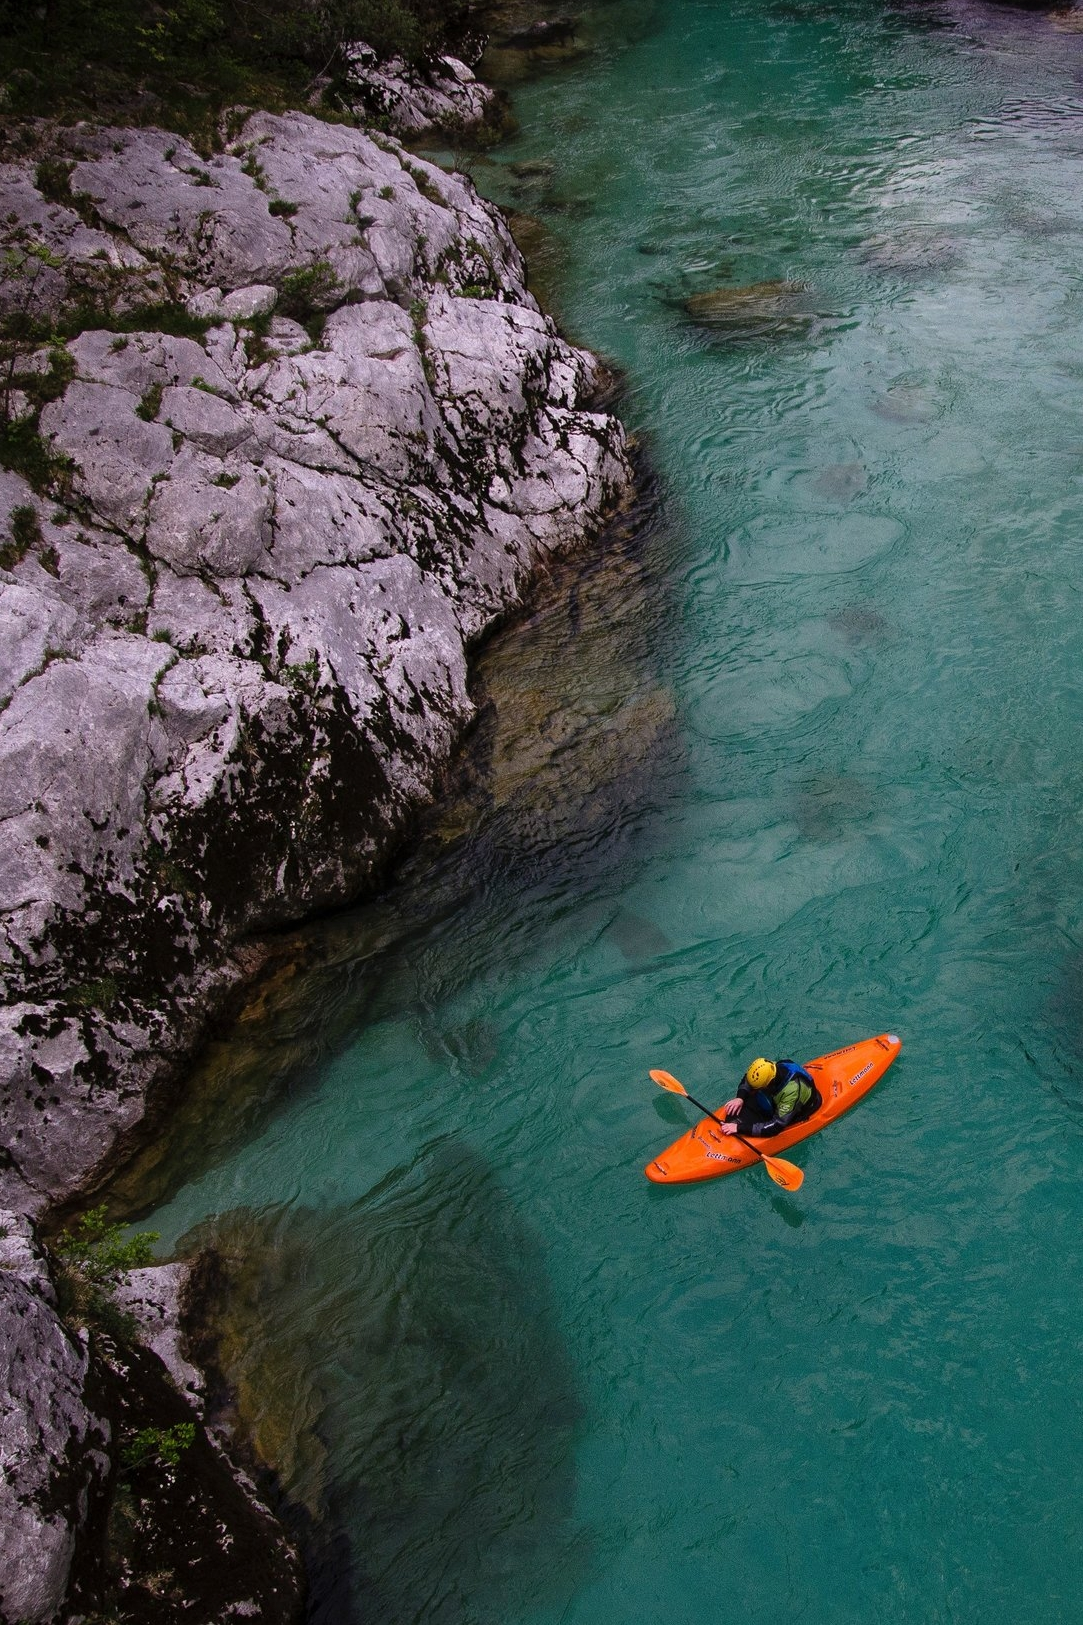 kayaking - Kayak down the Arkansas River slalom course right here in downtown Salida, Co. Take a kayaking course from RMOC or rent a kayak at River Runners Try the newest craze… duckies…inflatable kayaks for the trip of a lifetime.